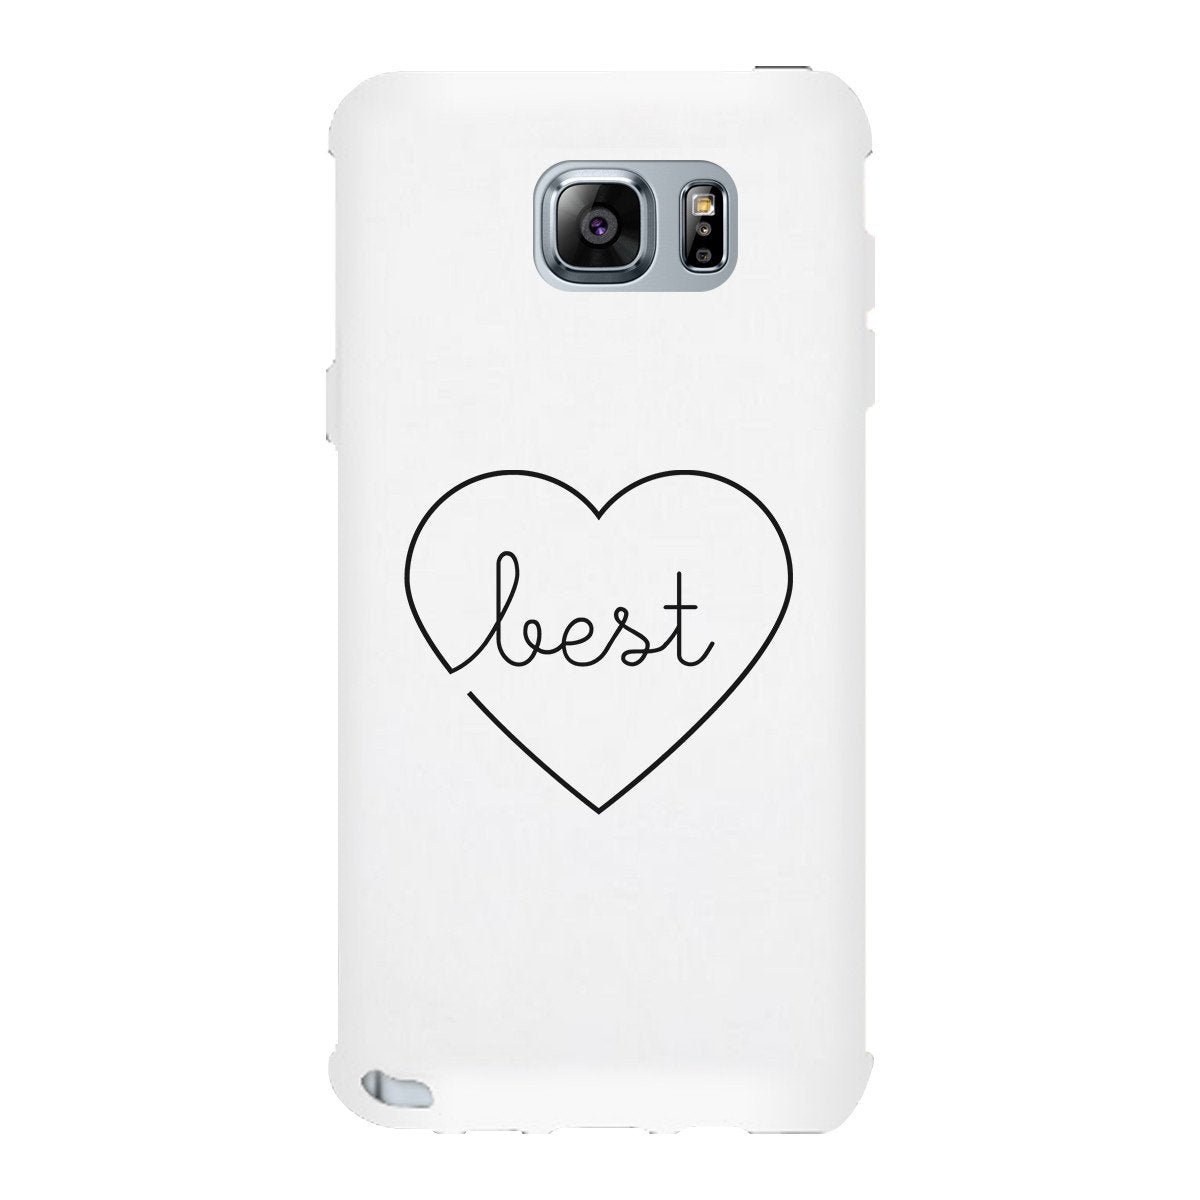 Best Babes - White Phone Case